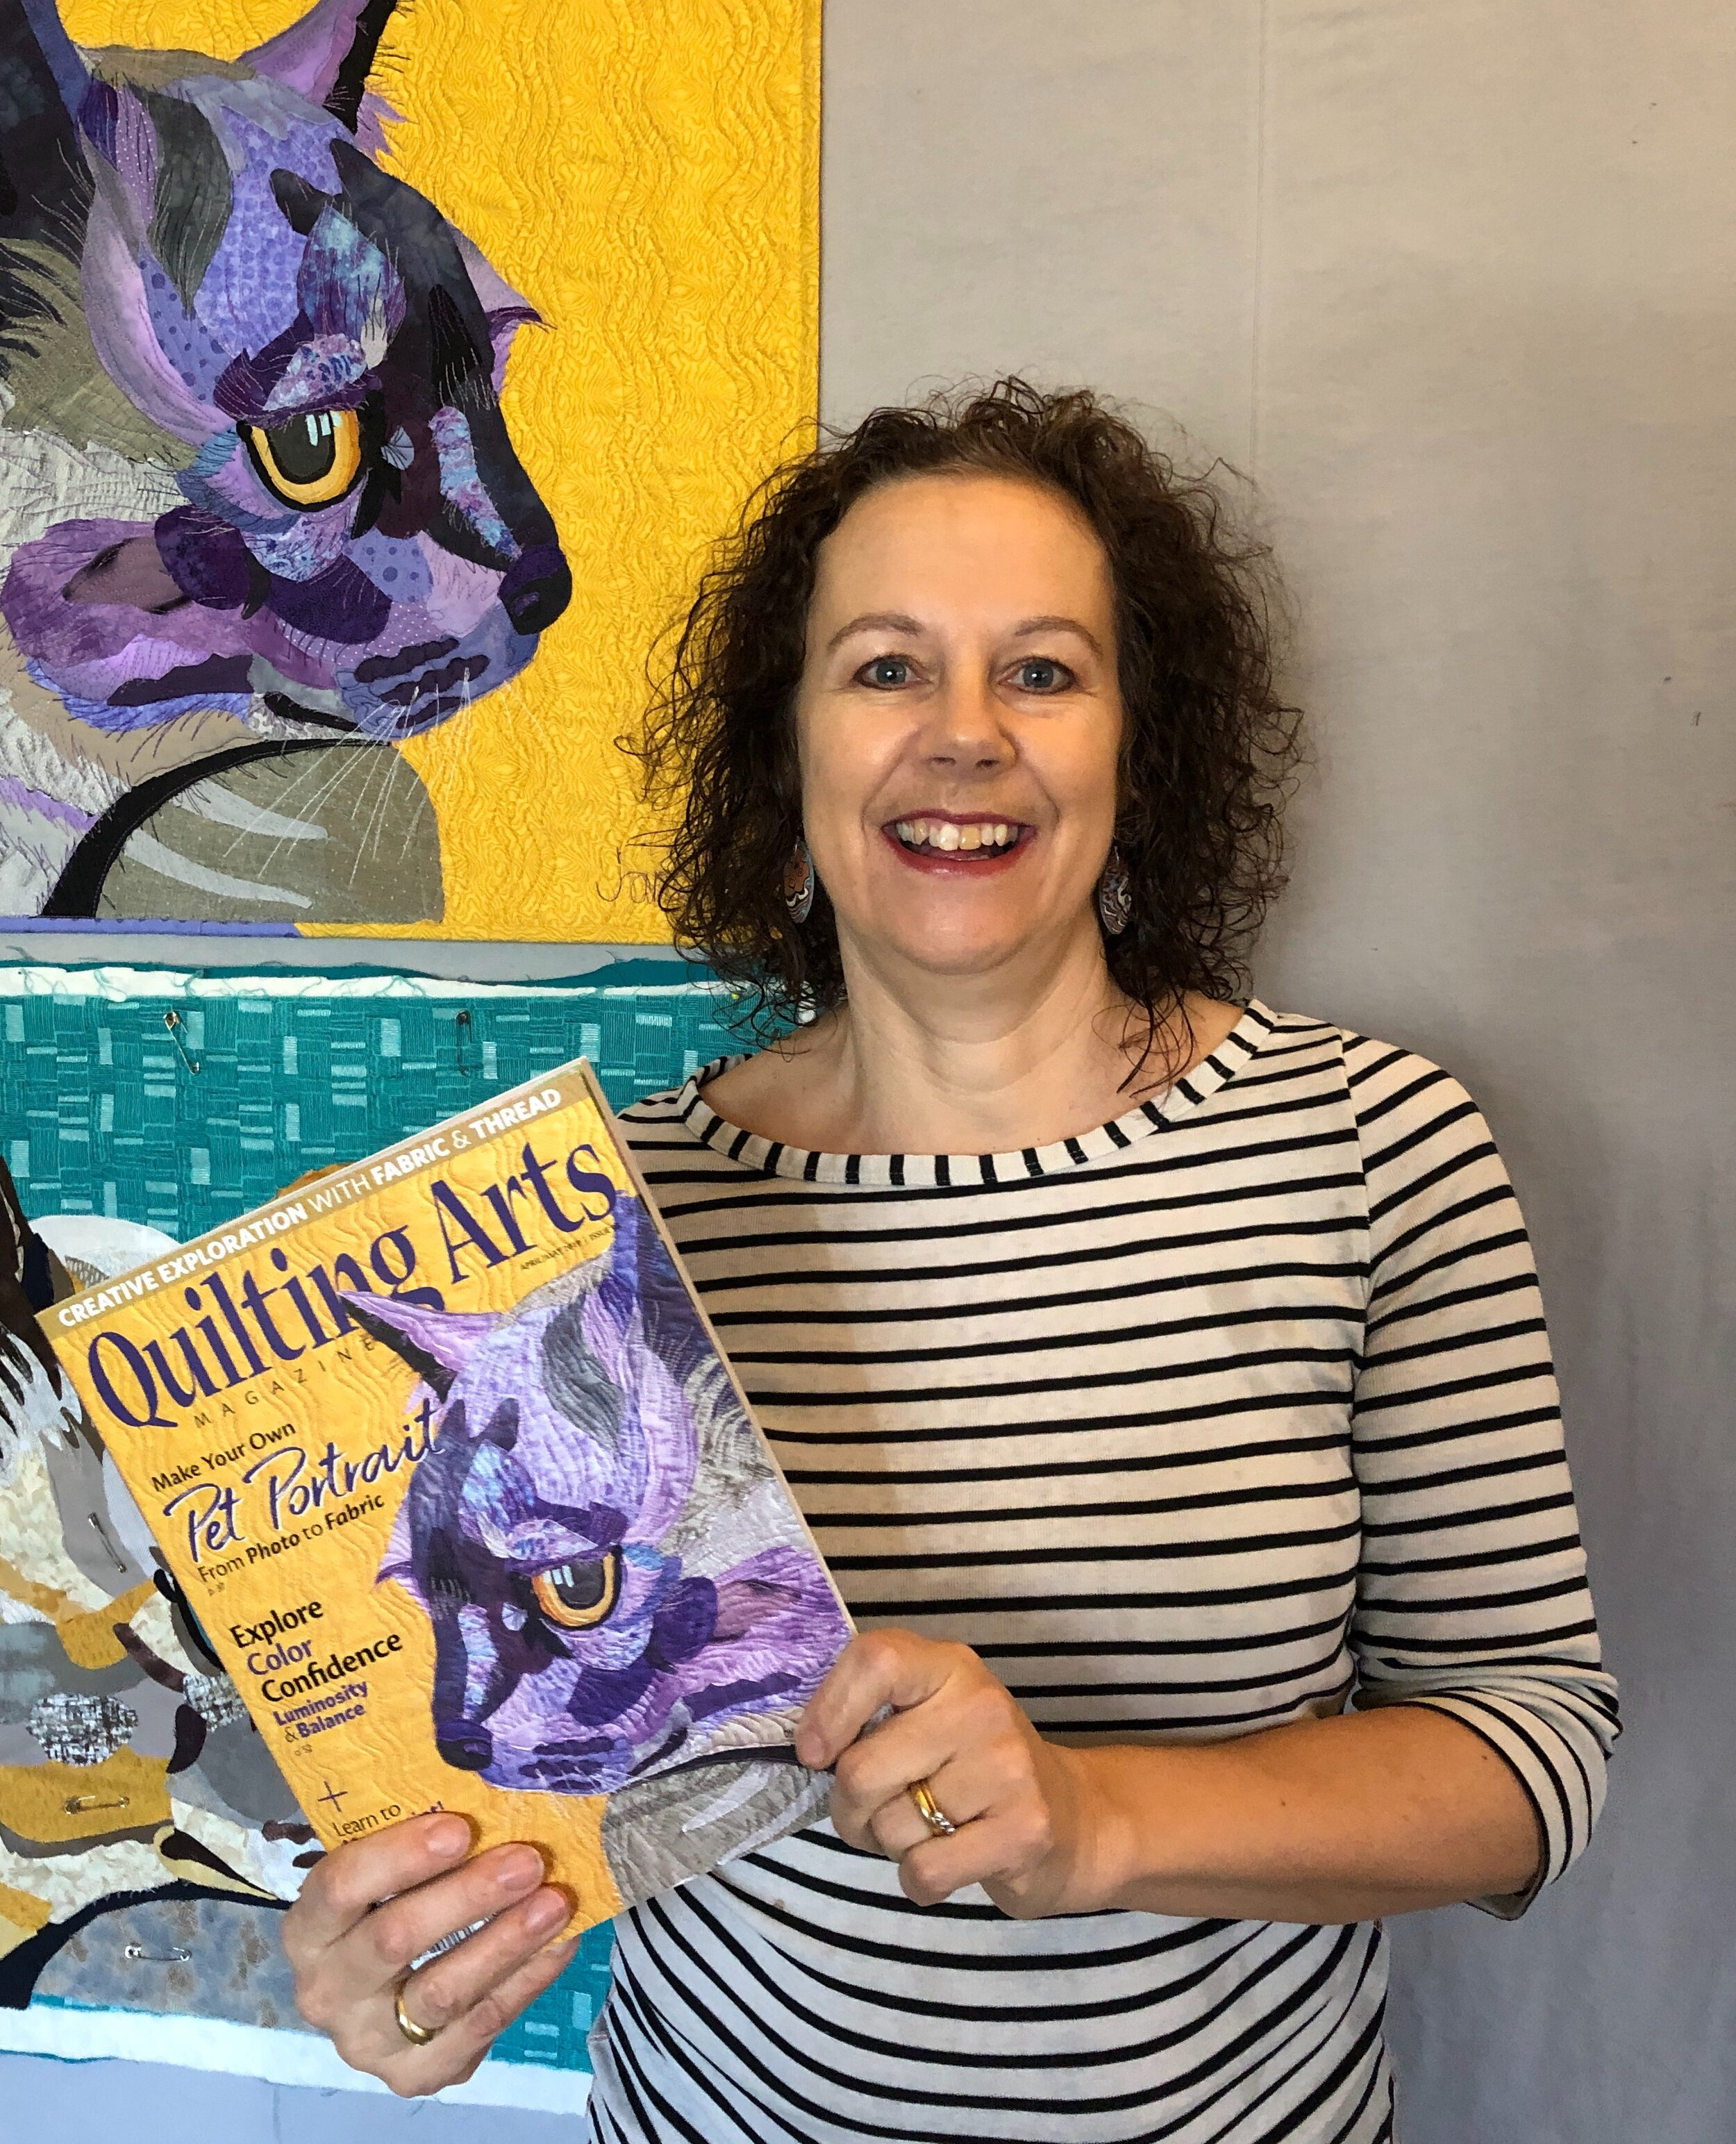 Me, Tilly and Quilting Arts magazine